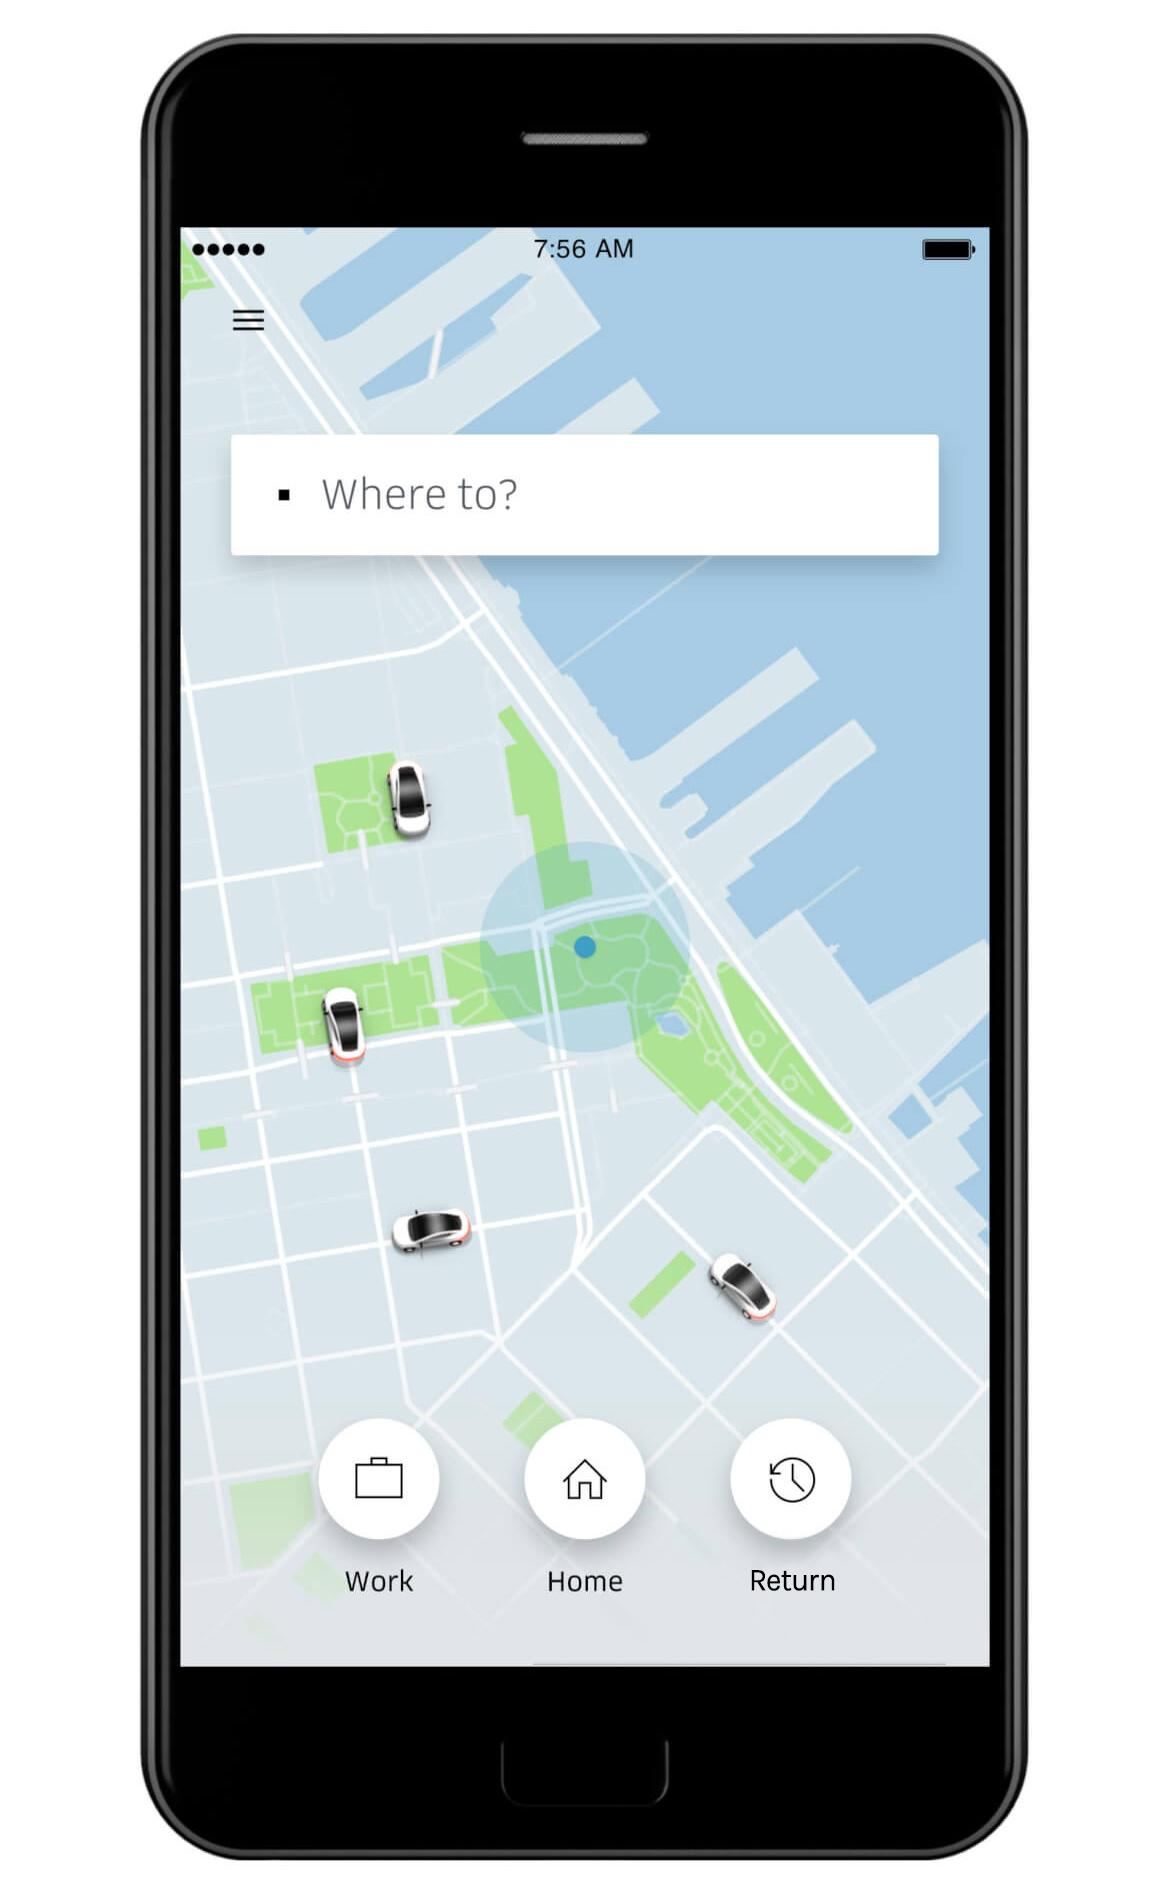 Uber mobile app anticipatory design